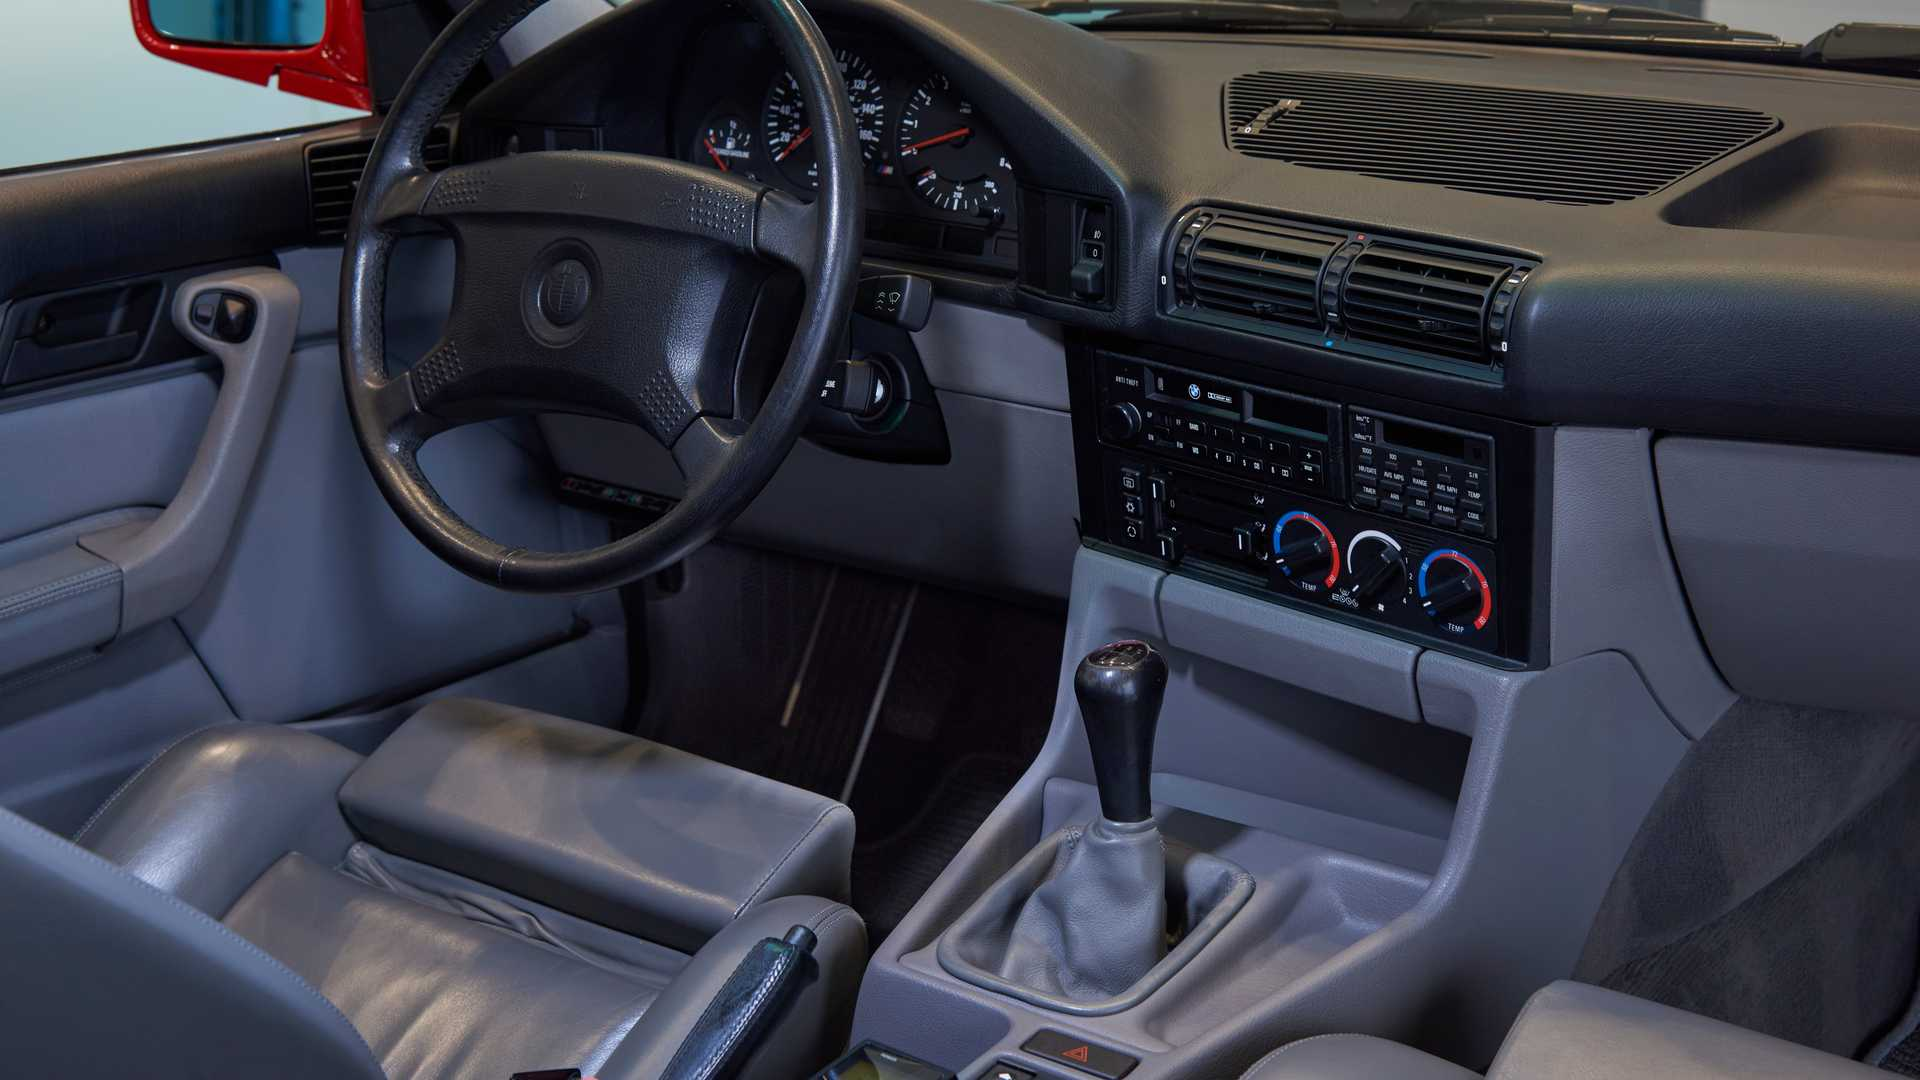 is there car that are manual and autmatic